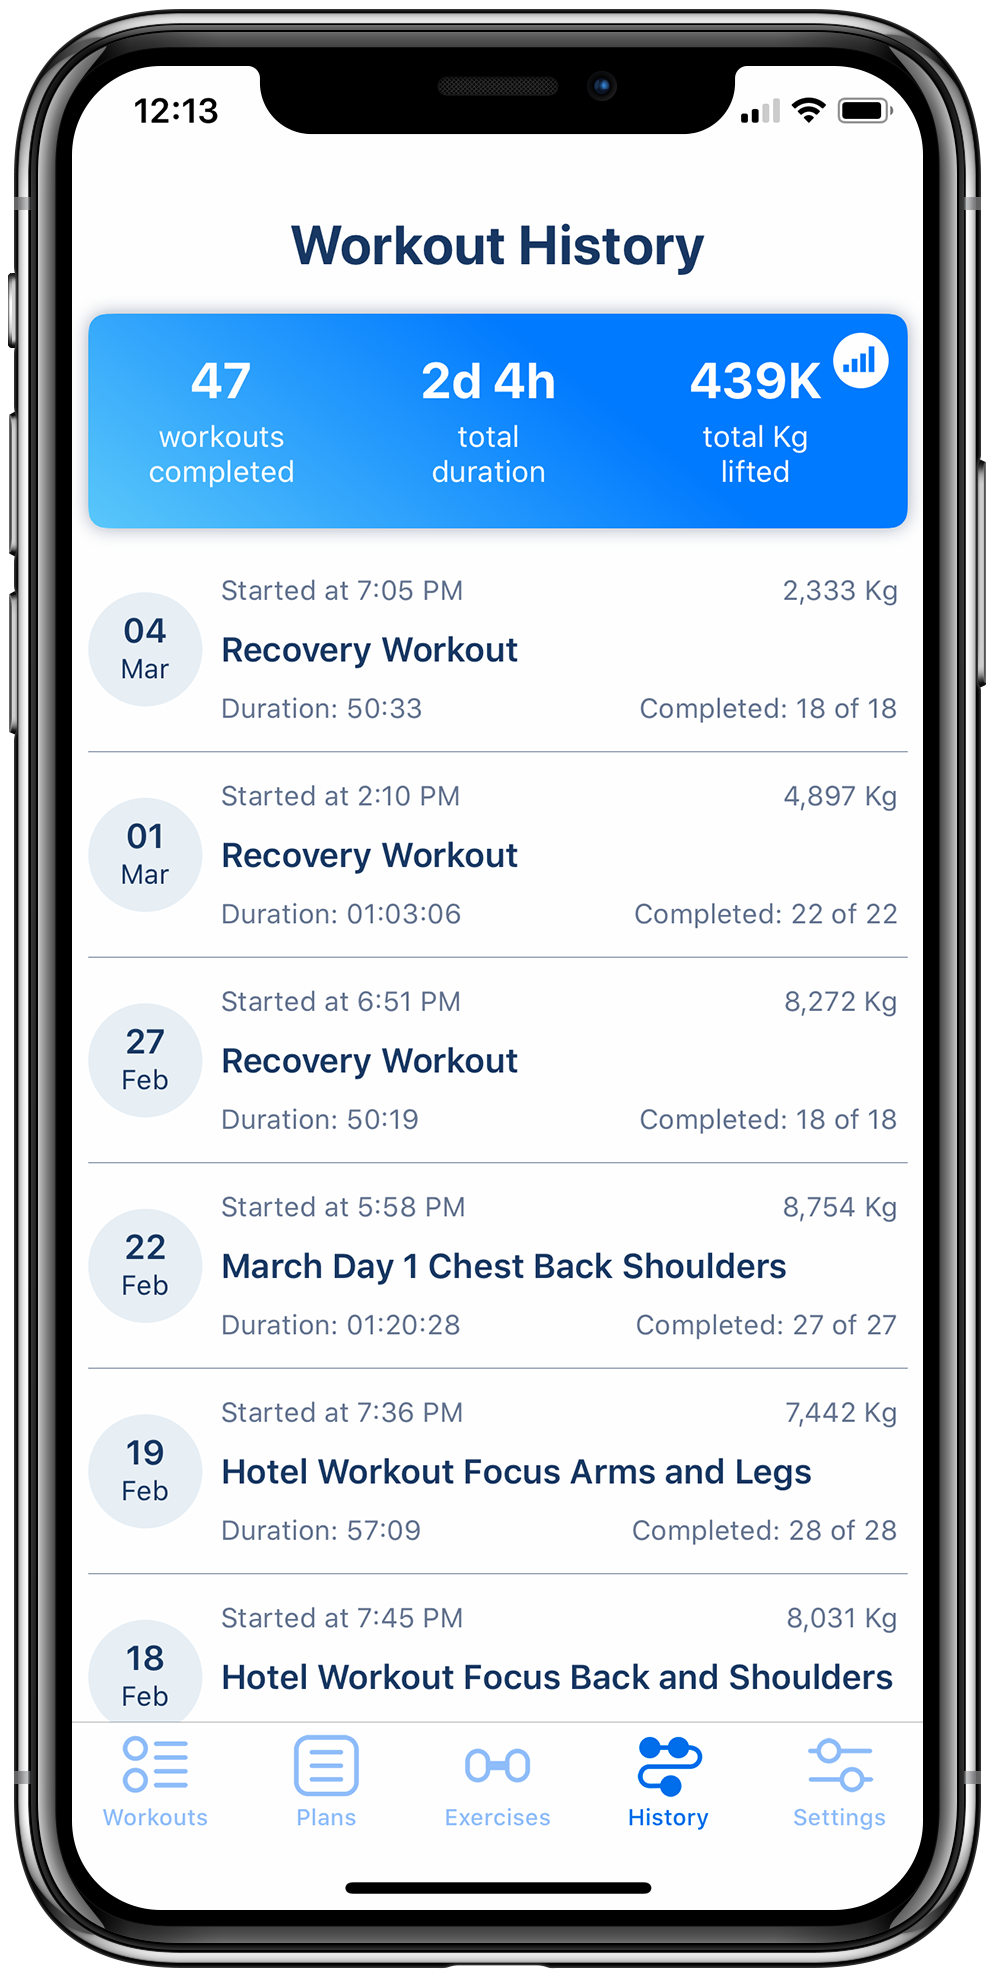 Workout tracker app on iPhone displaying a history of executed workouts